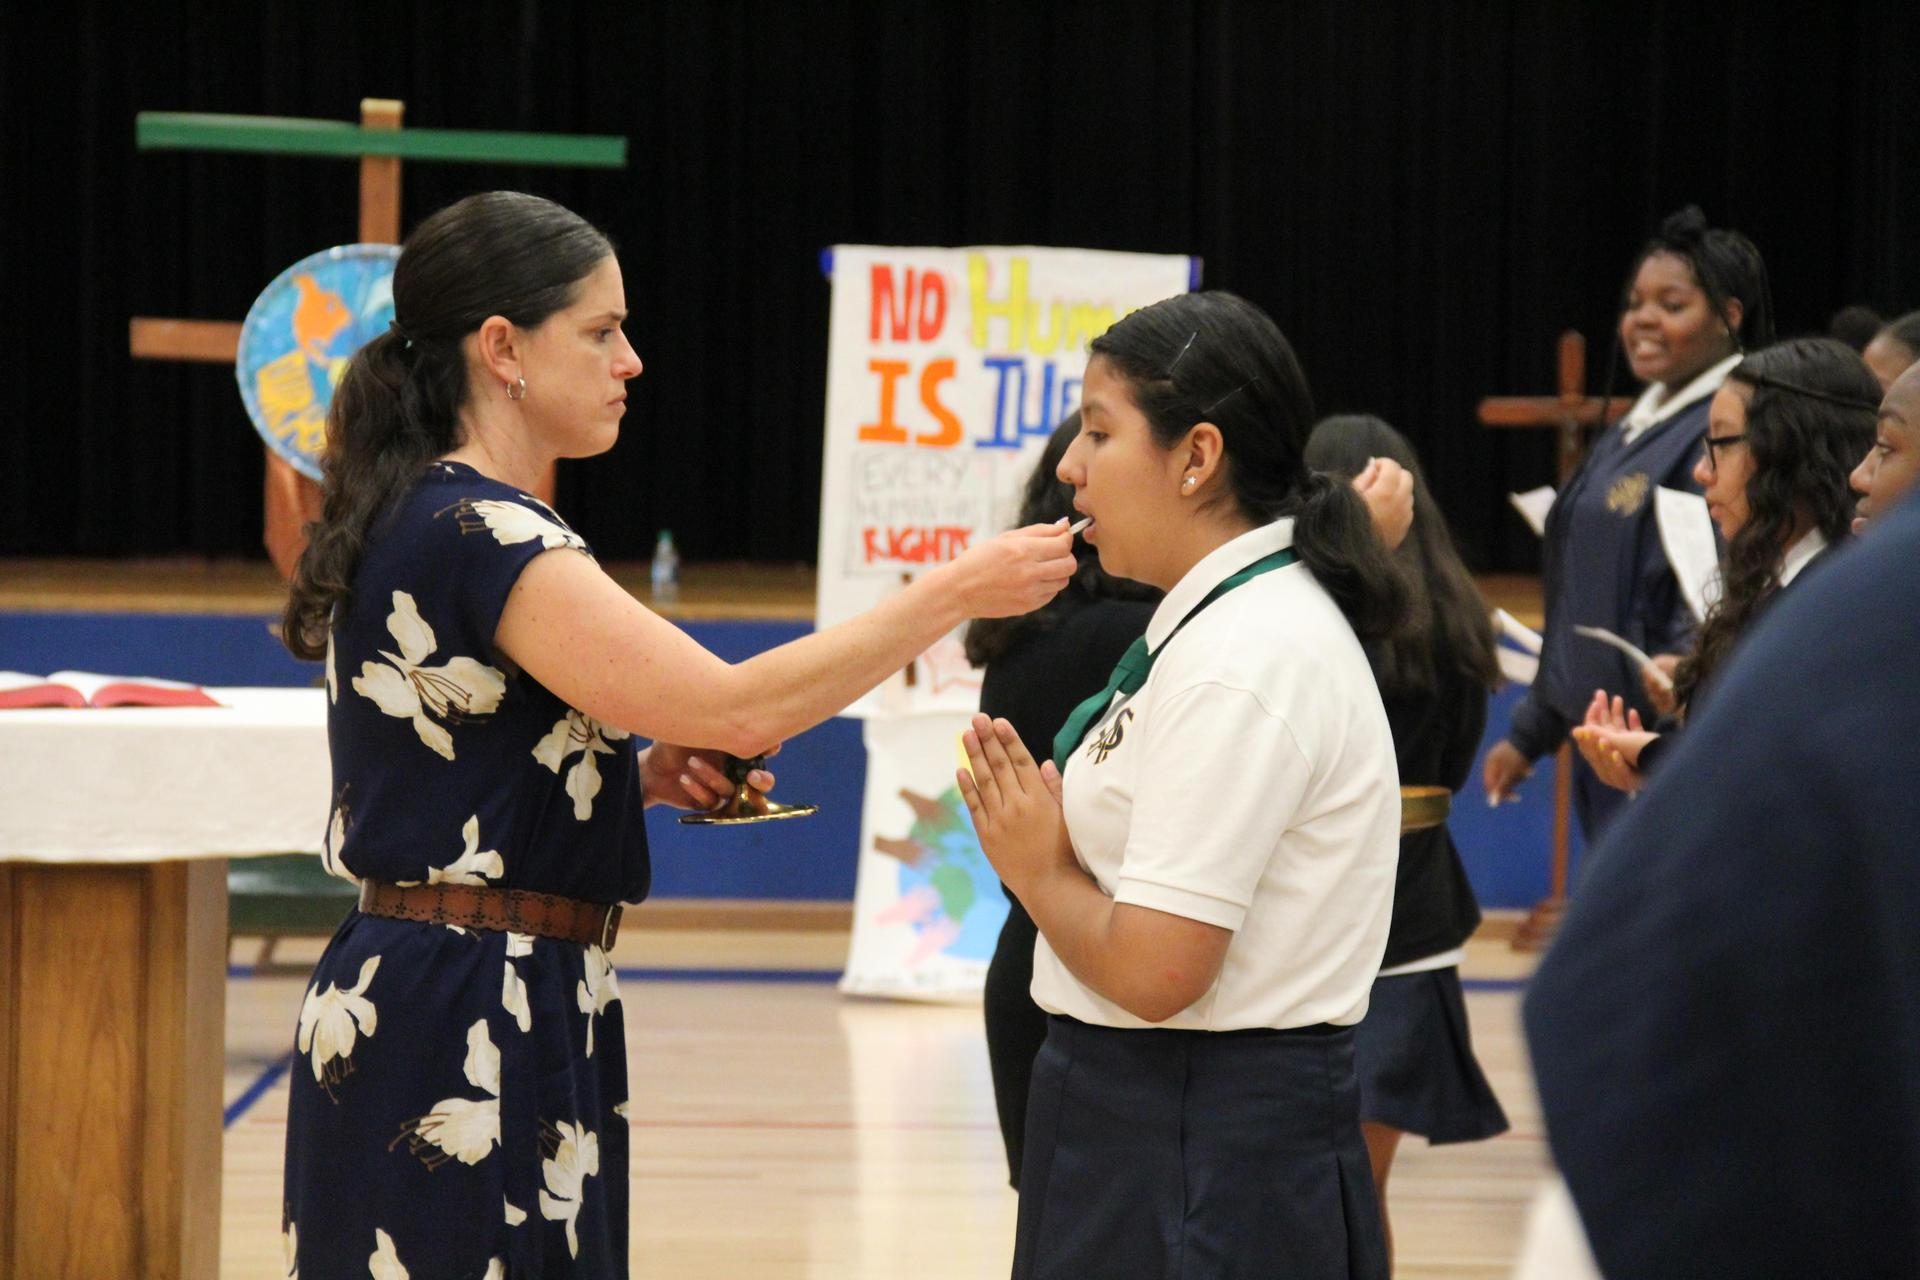 student receiving communion at school mas